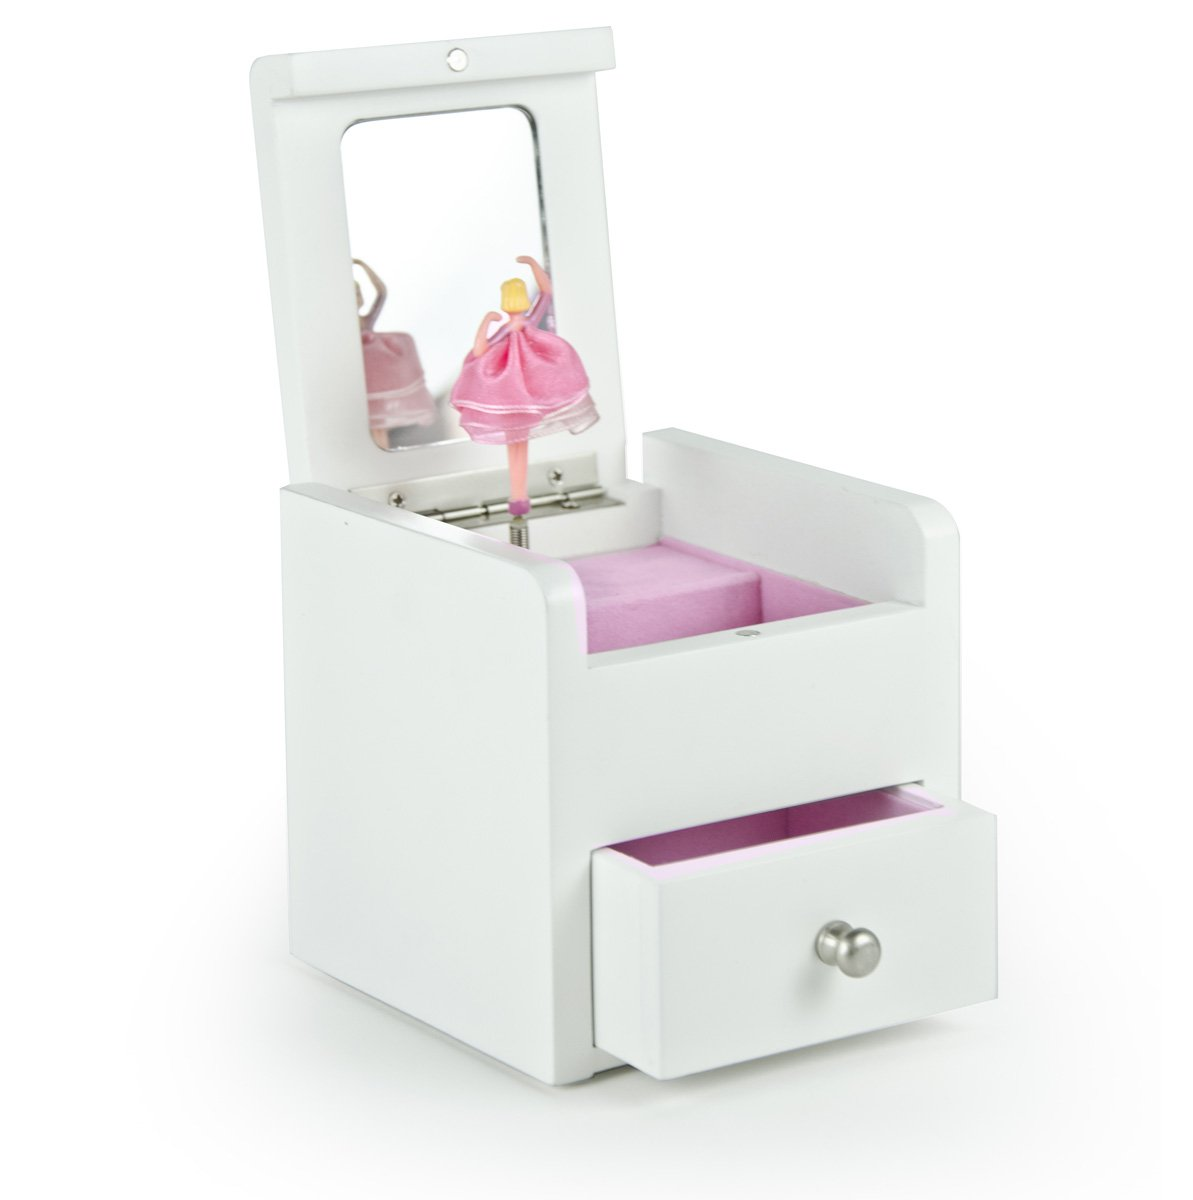 Matte White 18 Note Ballerina Musical Jewelry Box With Pull Out Drawer - Customizable - Fountain of Love - SWISS (+$45) by MusicBoxAttic (Image #2)